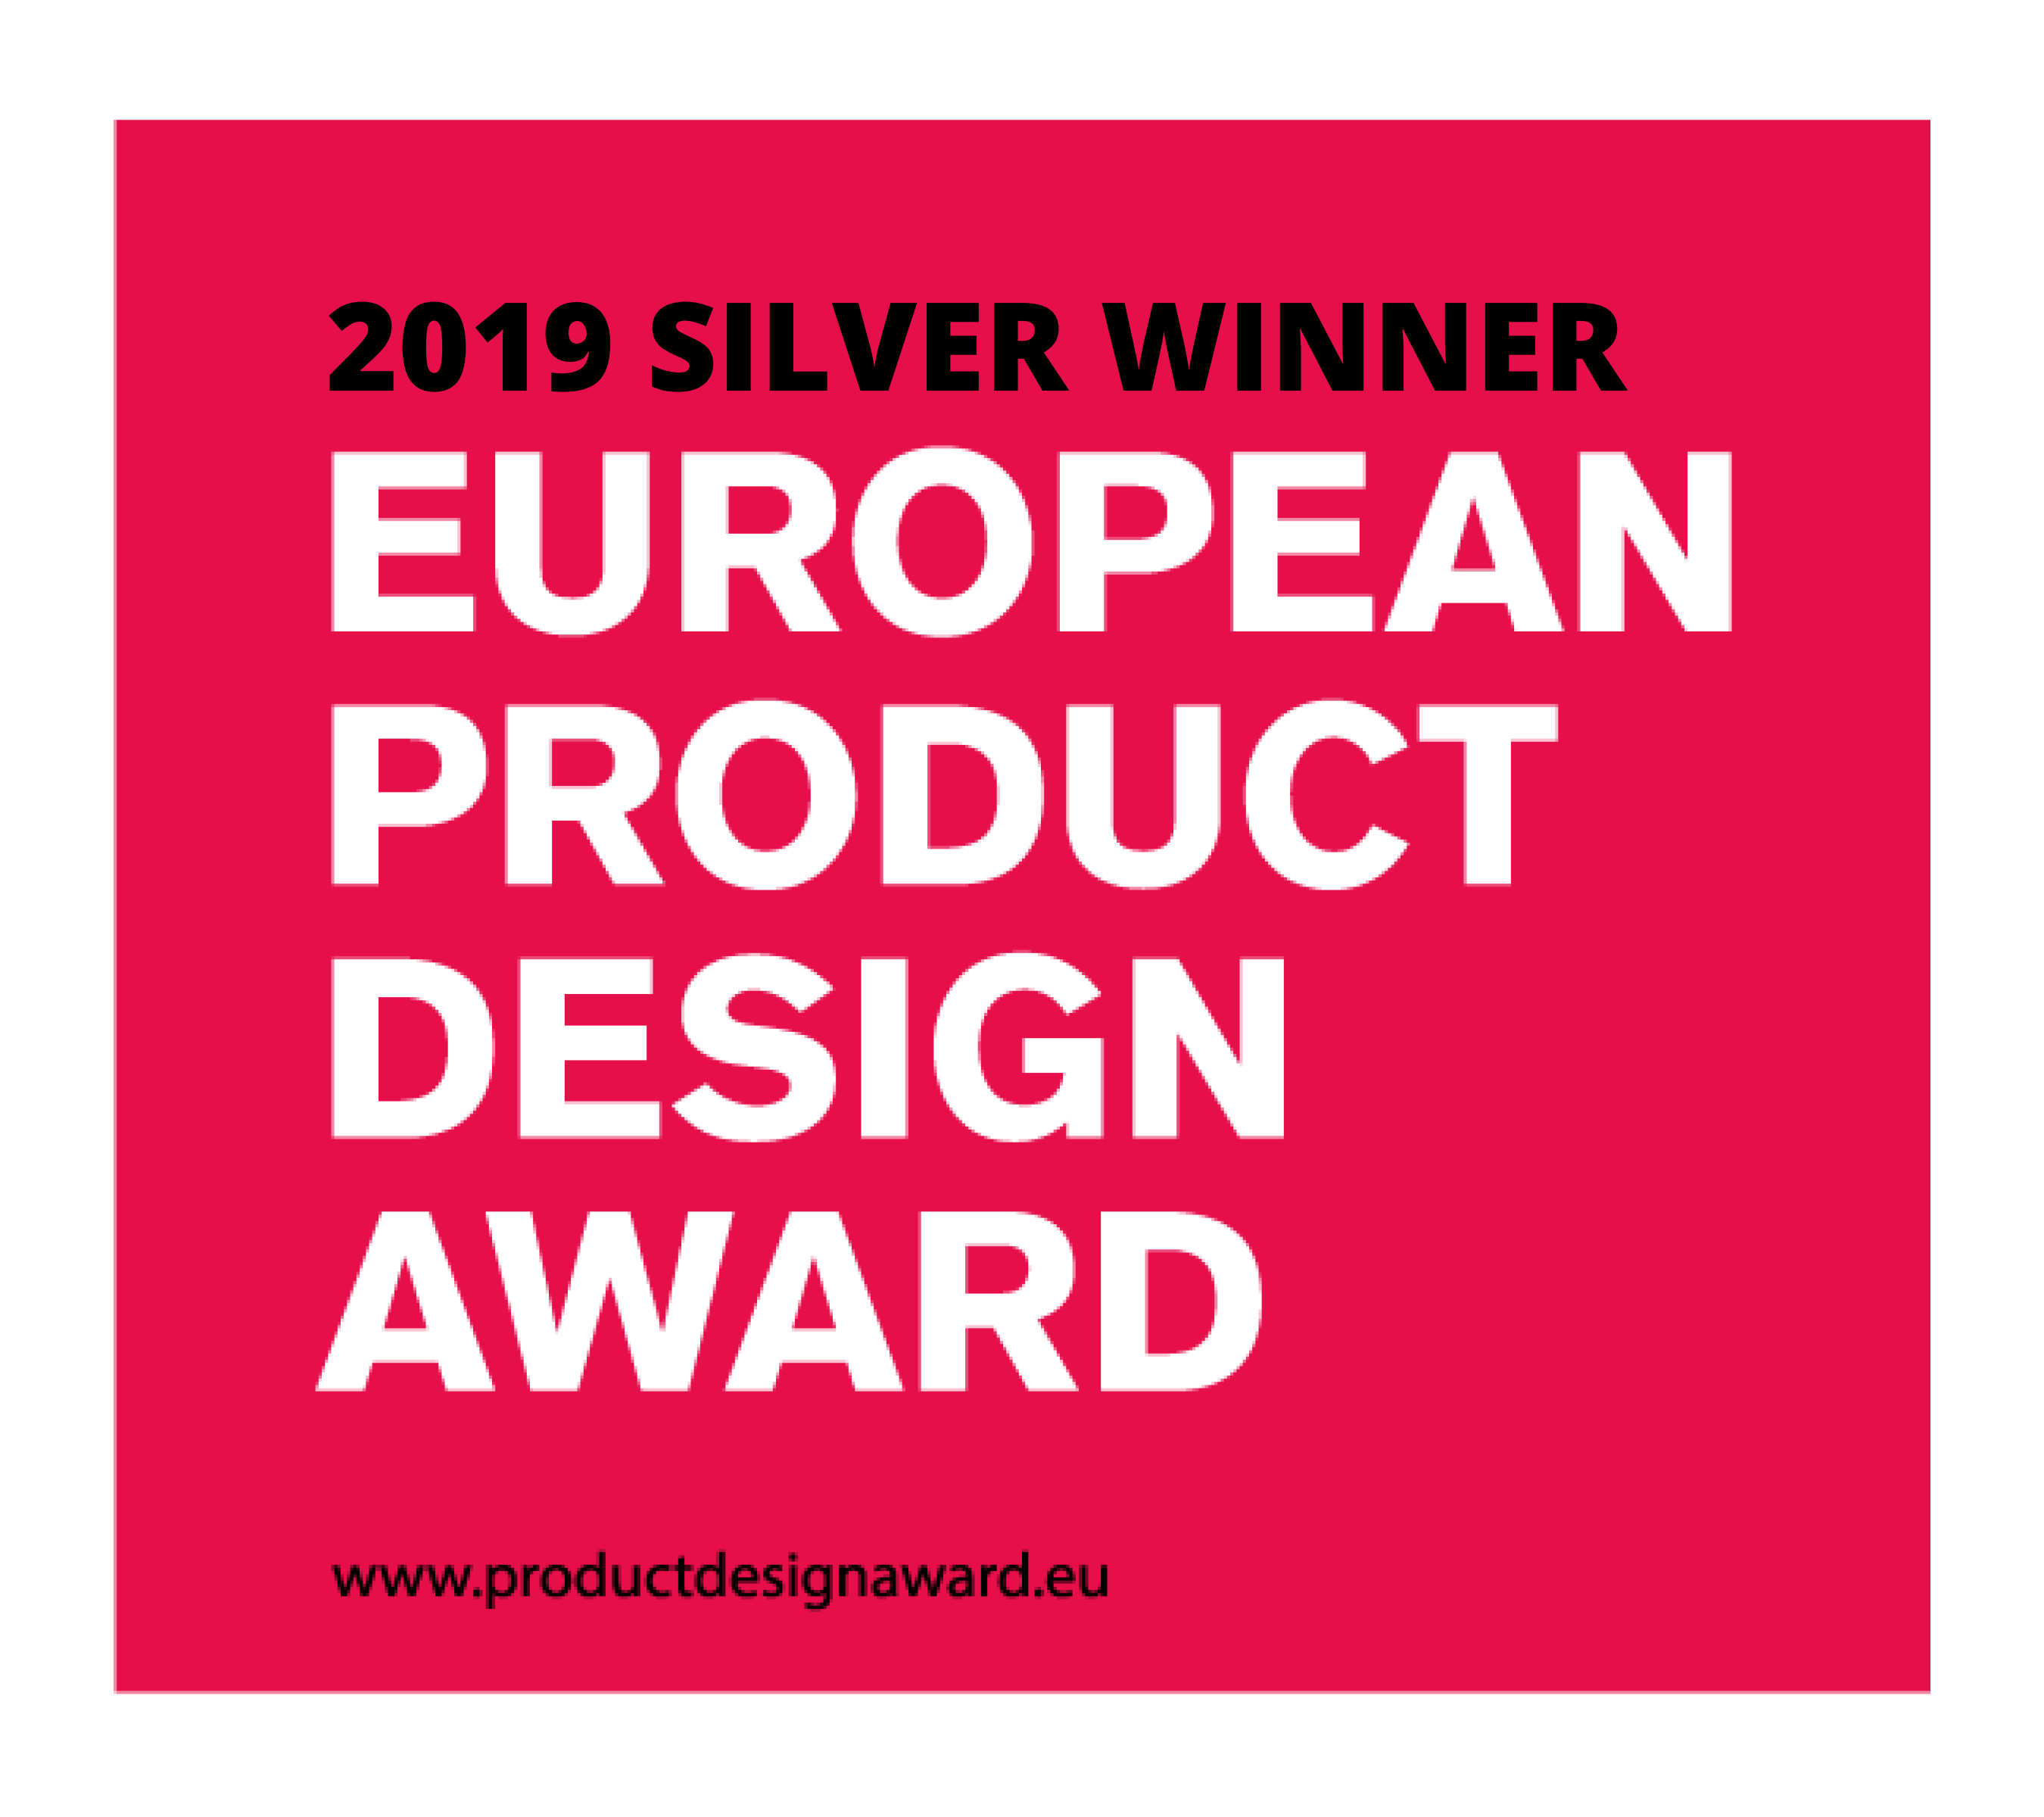 Easy Walk Experience awarded with European Product Design